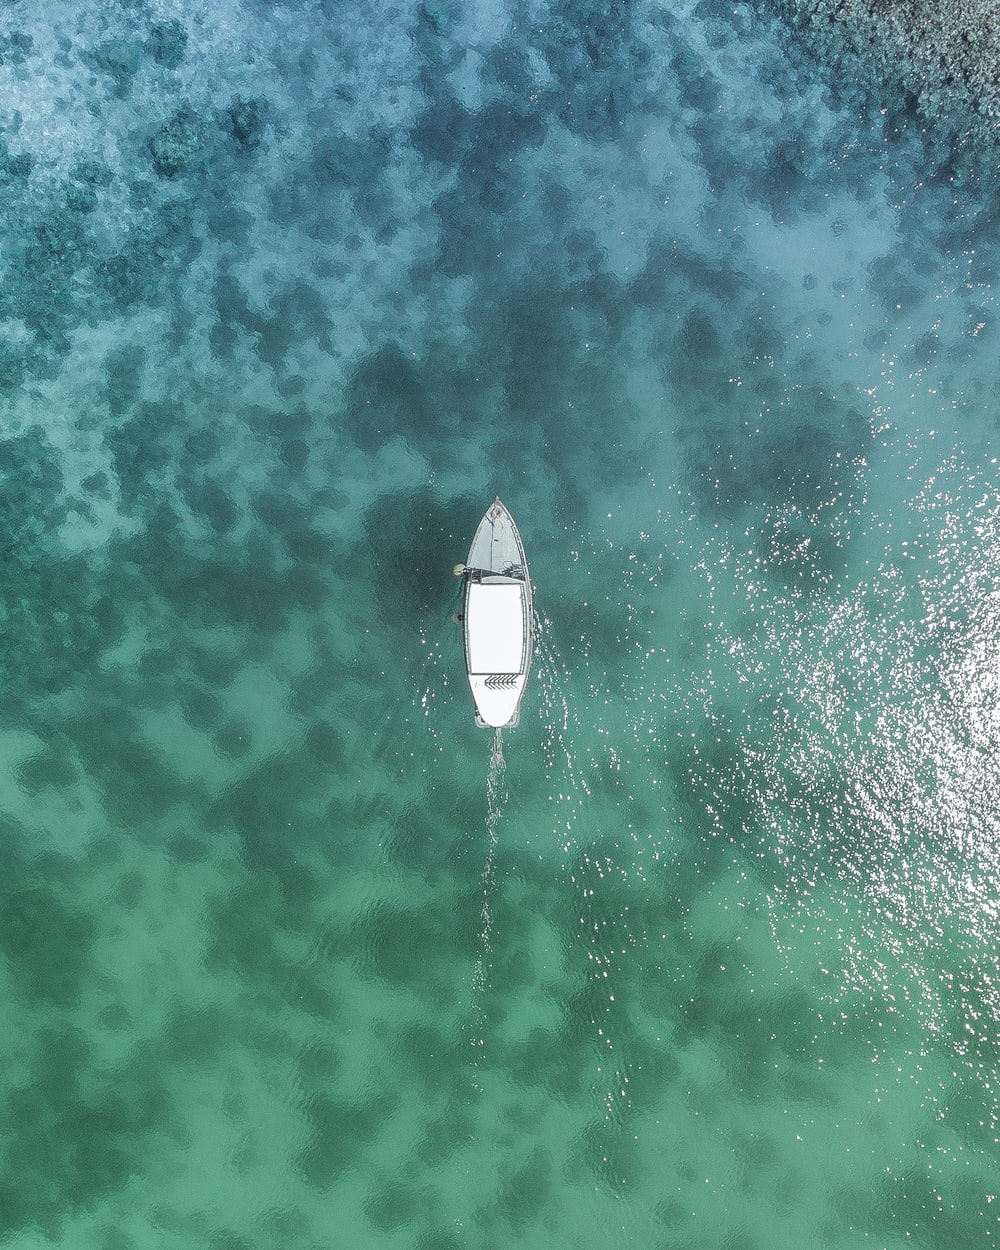 bird's eye view photo of white boat on body of water during daytime